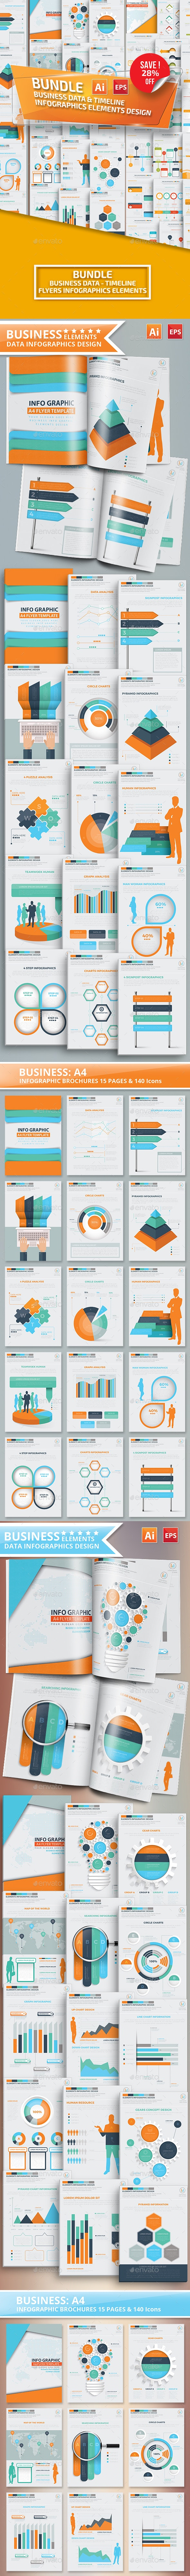 Bundle Data & Timeline Infographic Design - Infographics